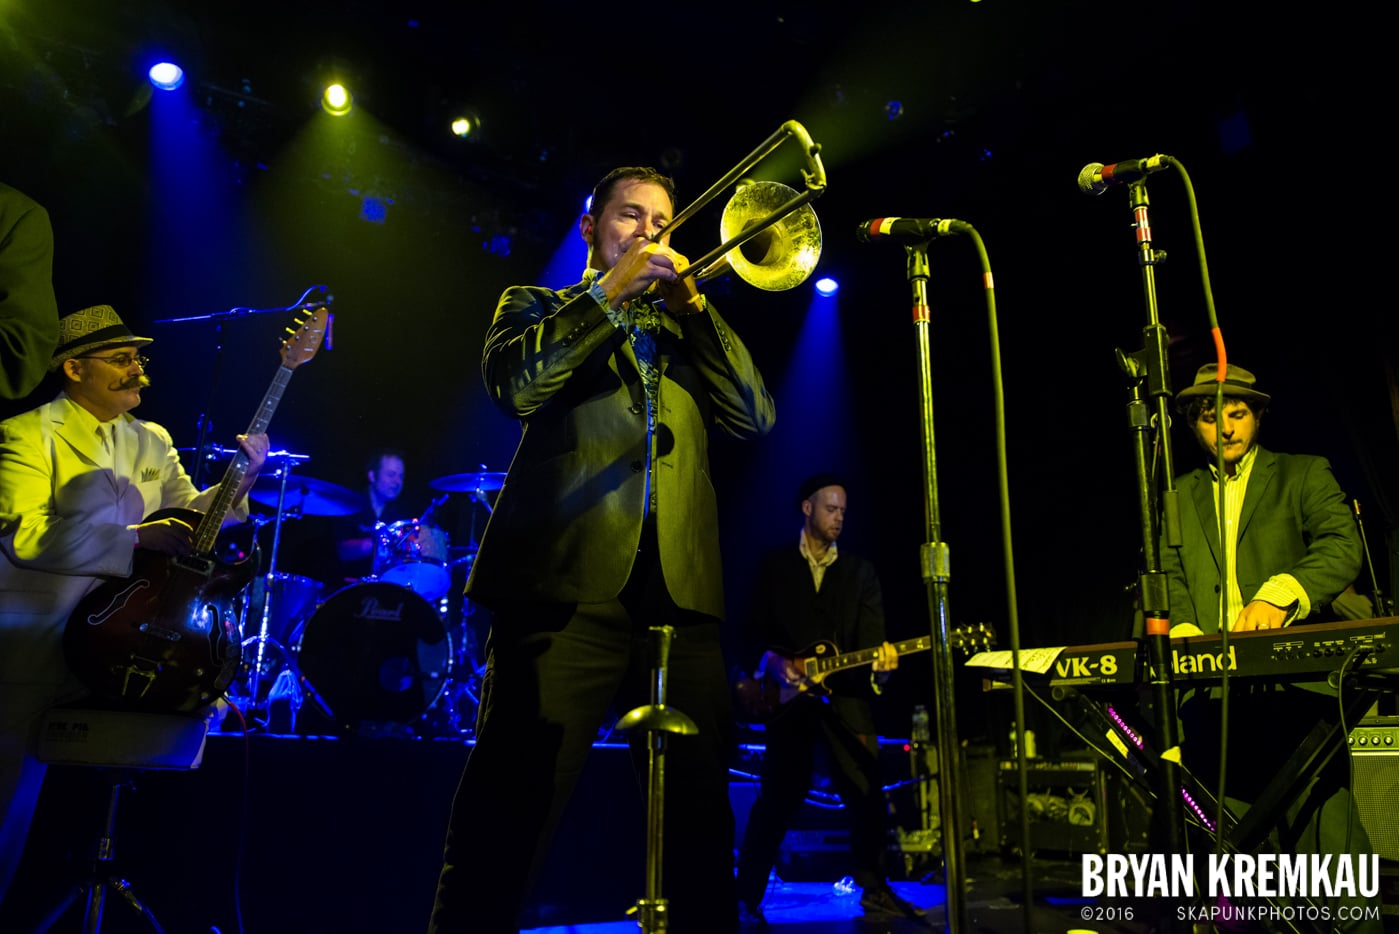 The Slackers @ Apple Stomp: Day 2, Irving Plaza, NYC - June 1st 2013 - Bryan Kremkau (37)